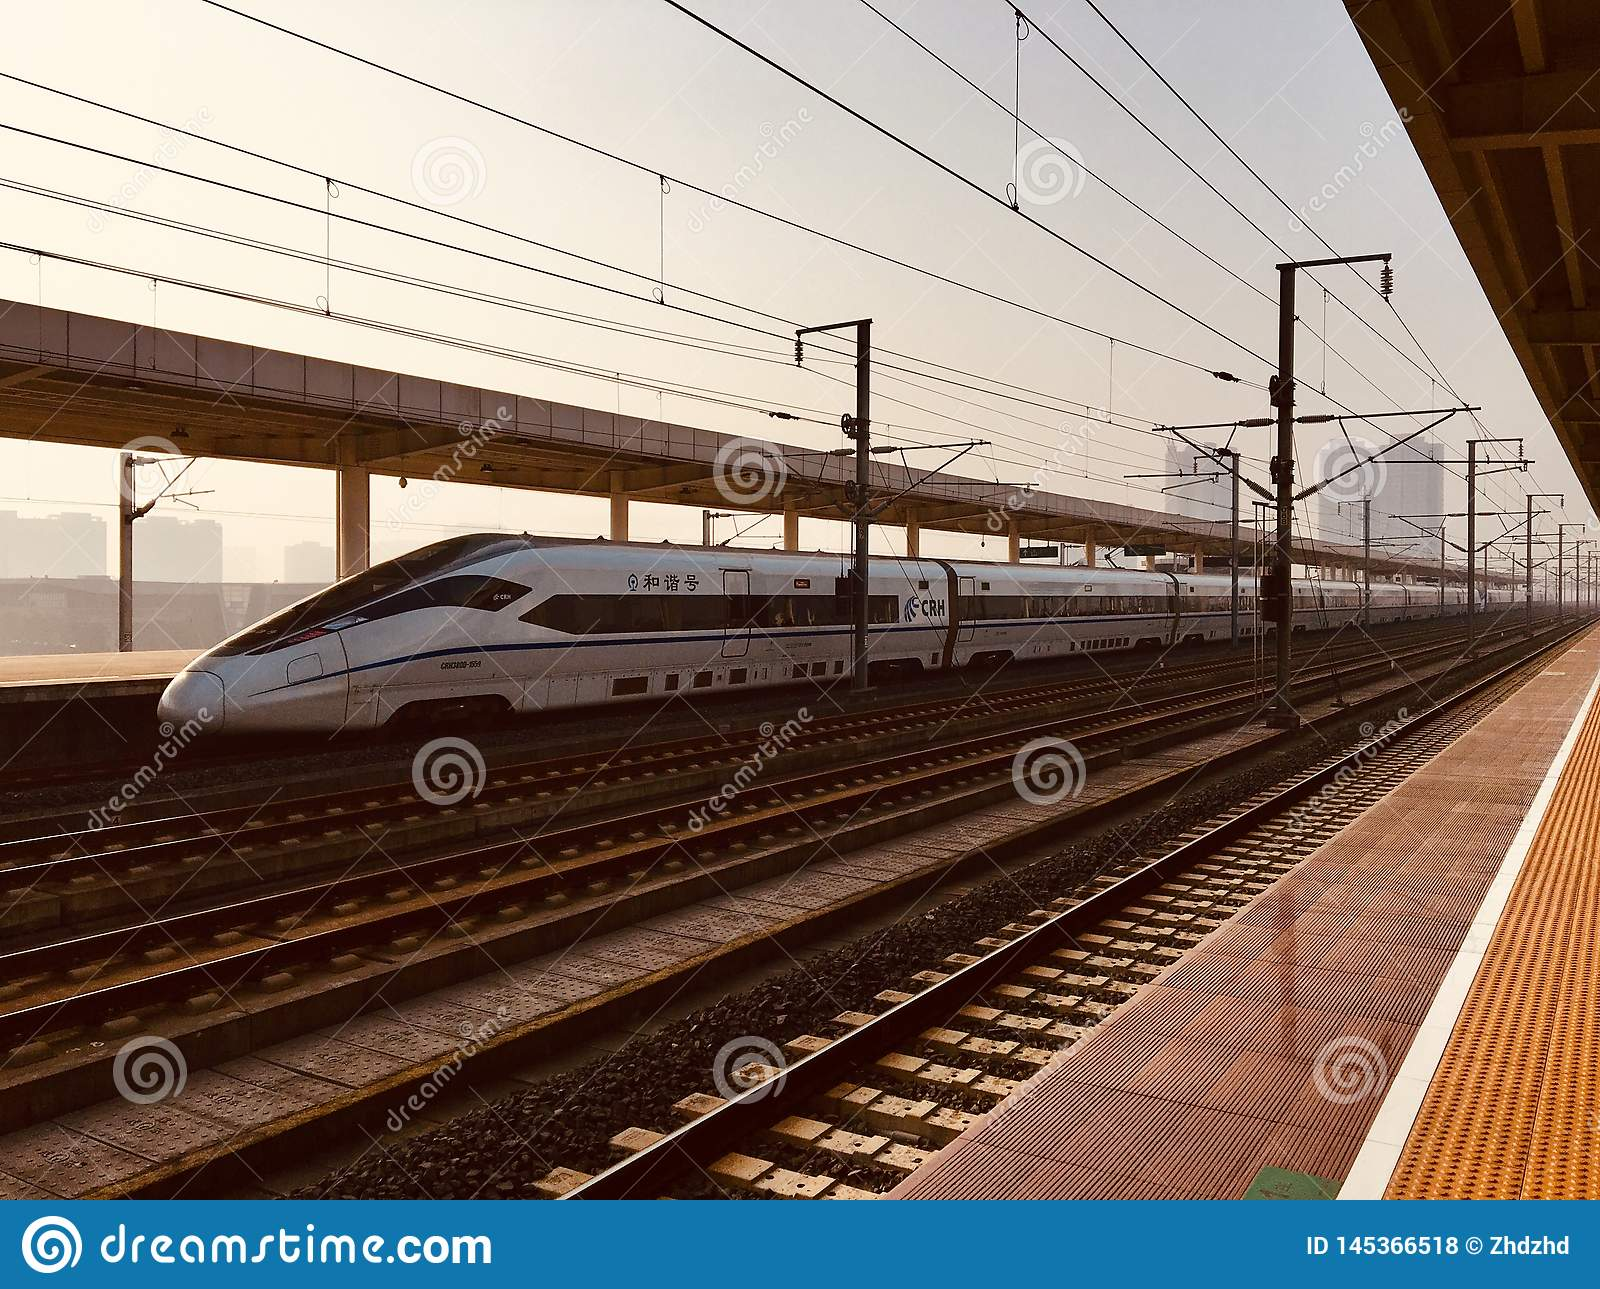 High-speed rail in the morning against the sun